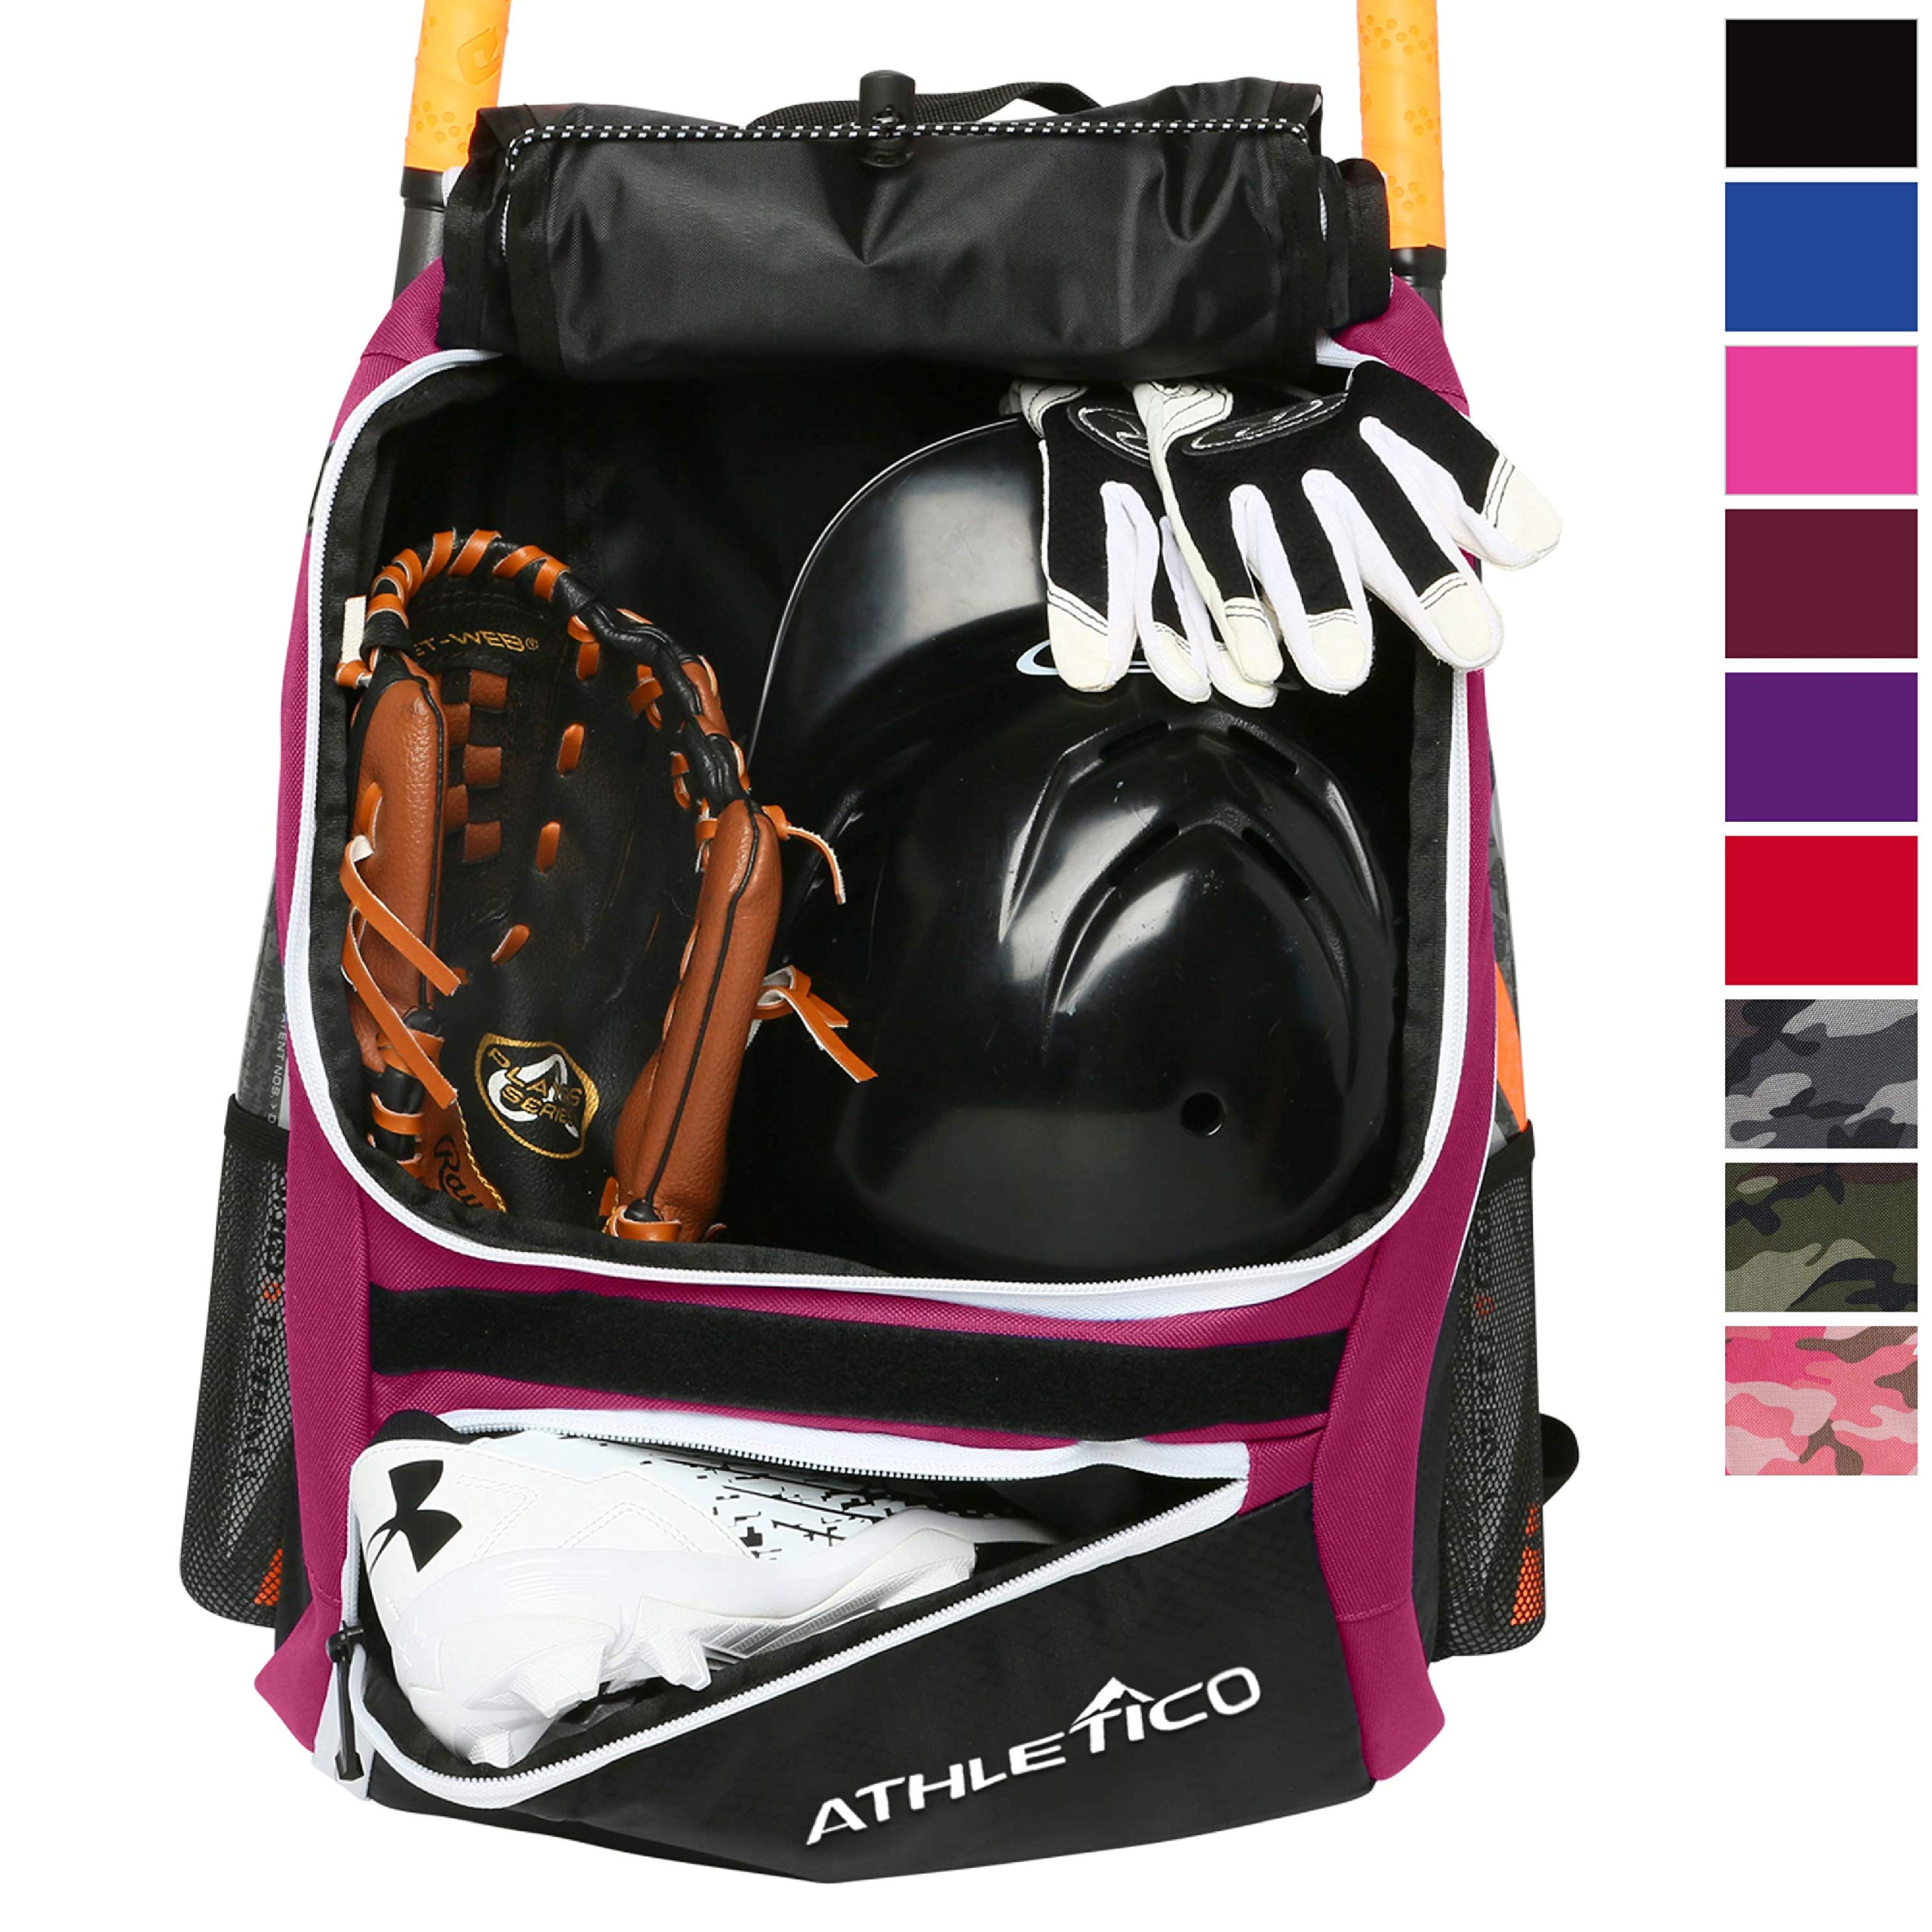 d71f7b1302b Athletico Baseball Bat Bag - Backpack for Baseball, T-Ball   Softball  Equipment   Gear for Youth and Adults   Holds Bat, Helmet, Glove, ...